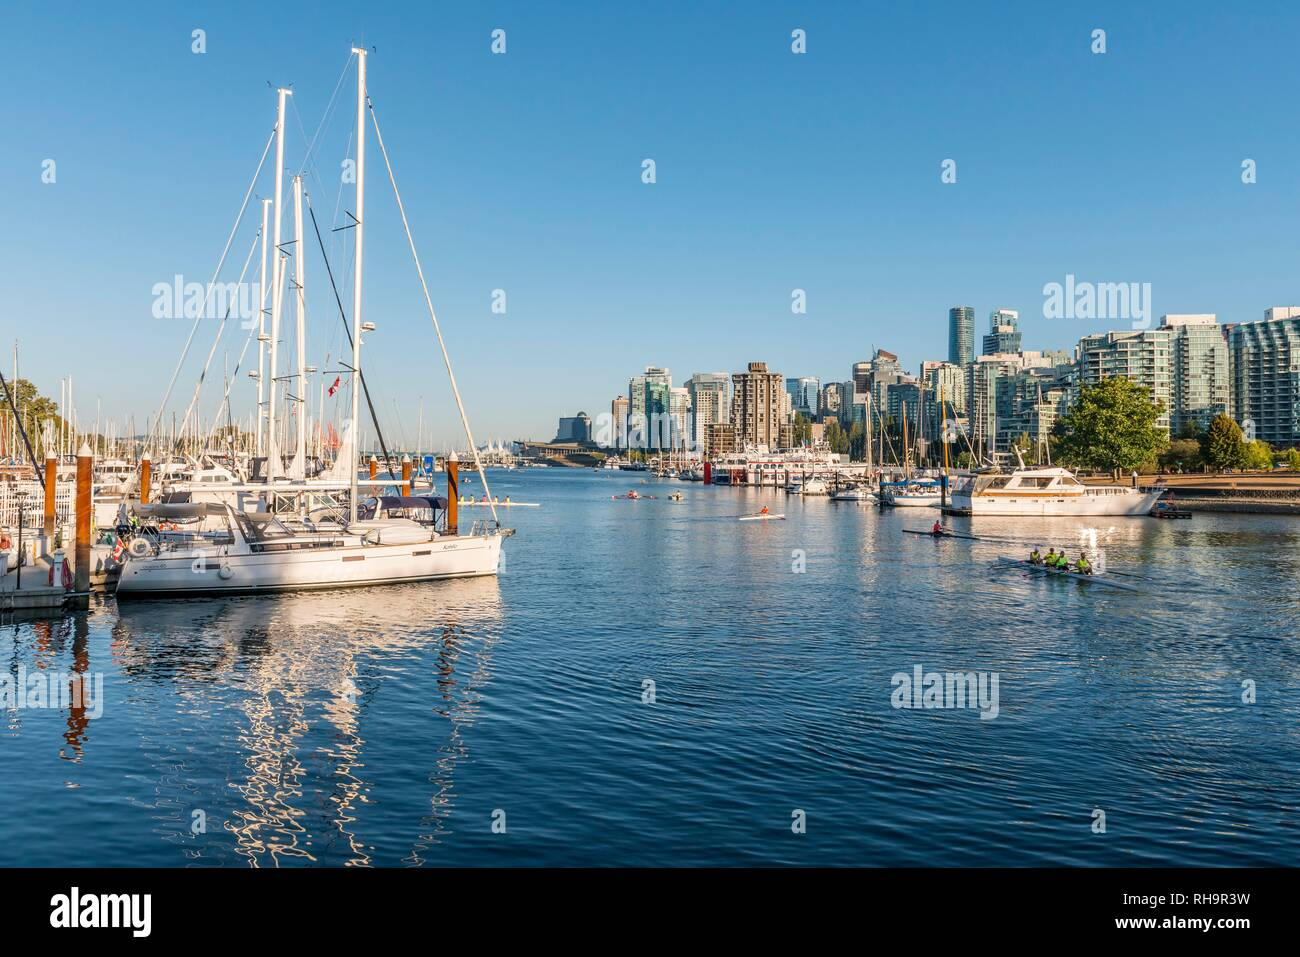 Marina with sailboats, back city centre with skyscrapers, Coal Harbour, Vancouver, British Columbia, Canada - Stock Image